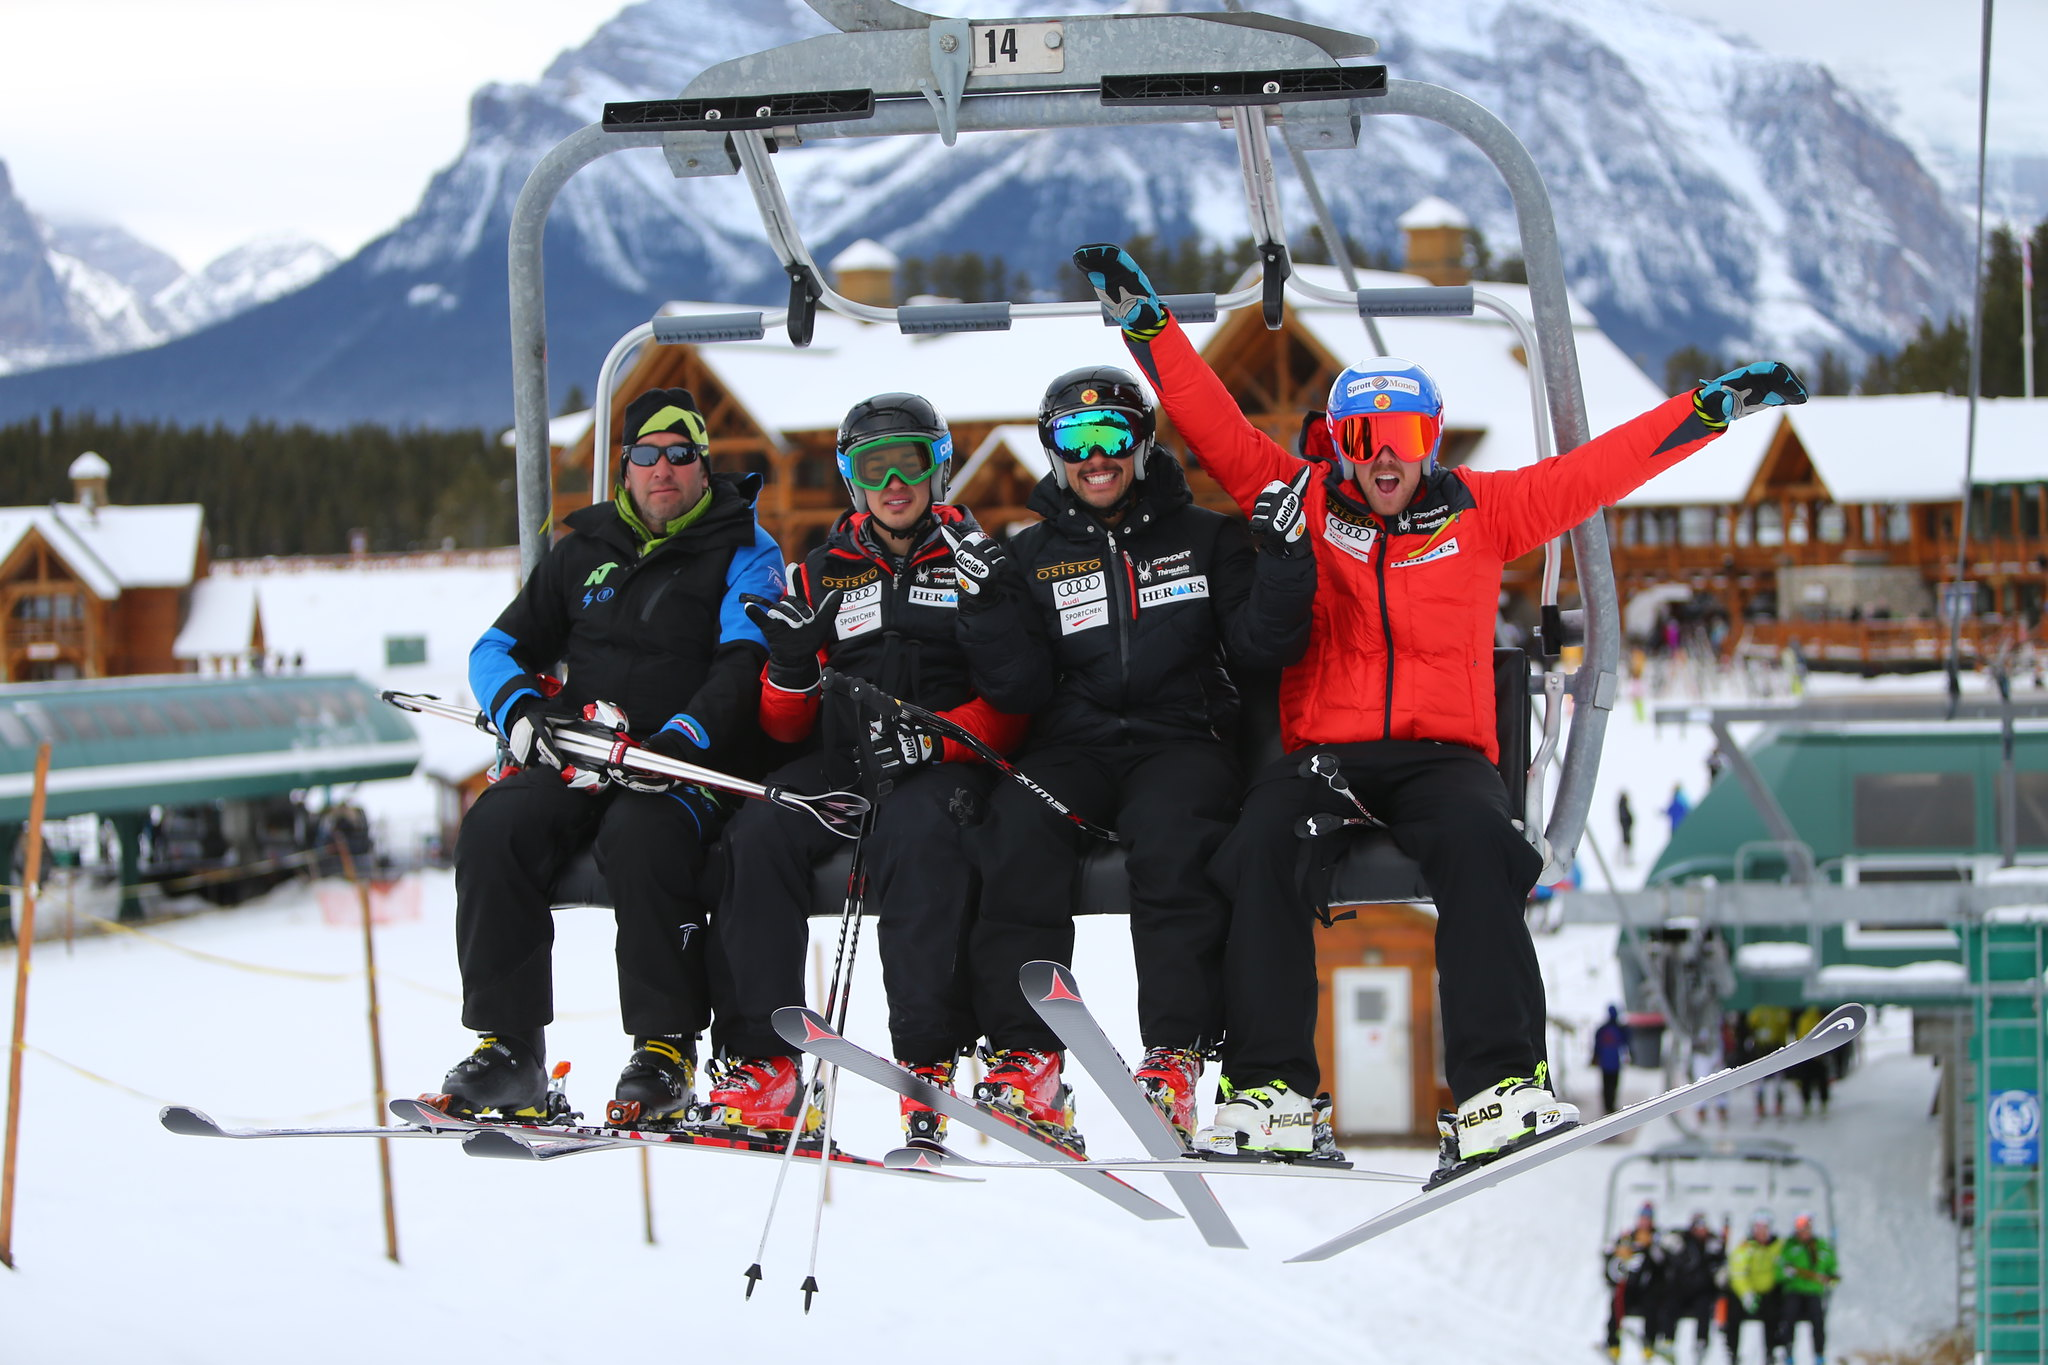 Conrad, Morgan and Dustin have some fun on the chairlift during a free ski day in Lake Louise, CAN